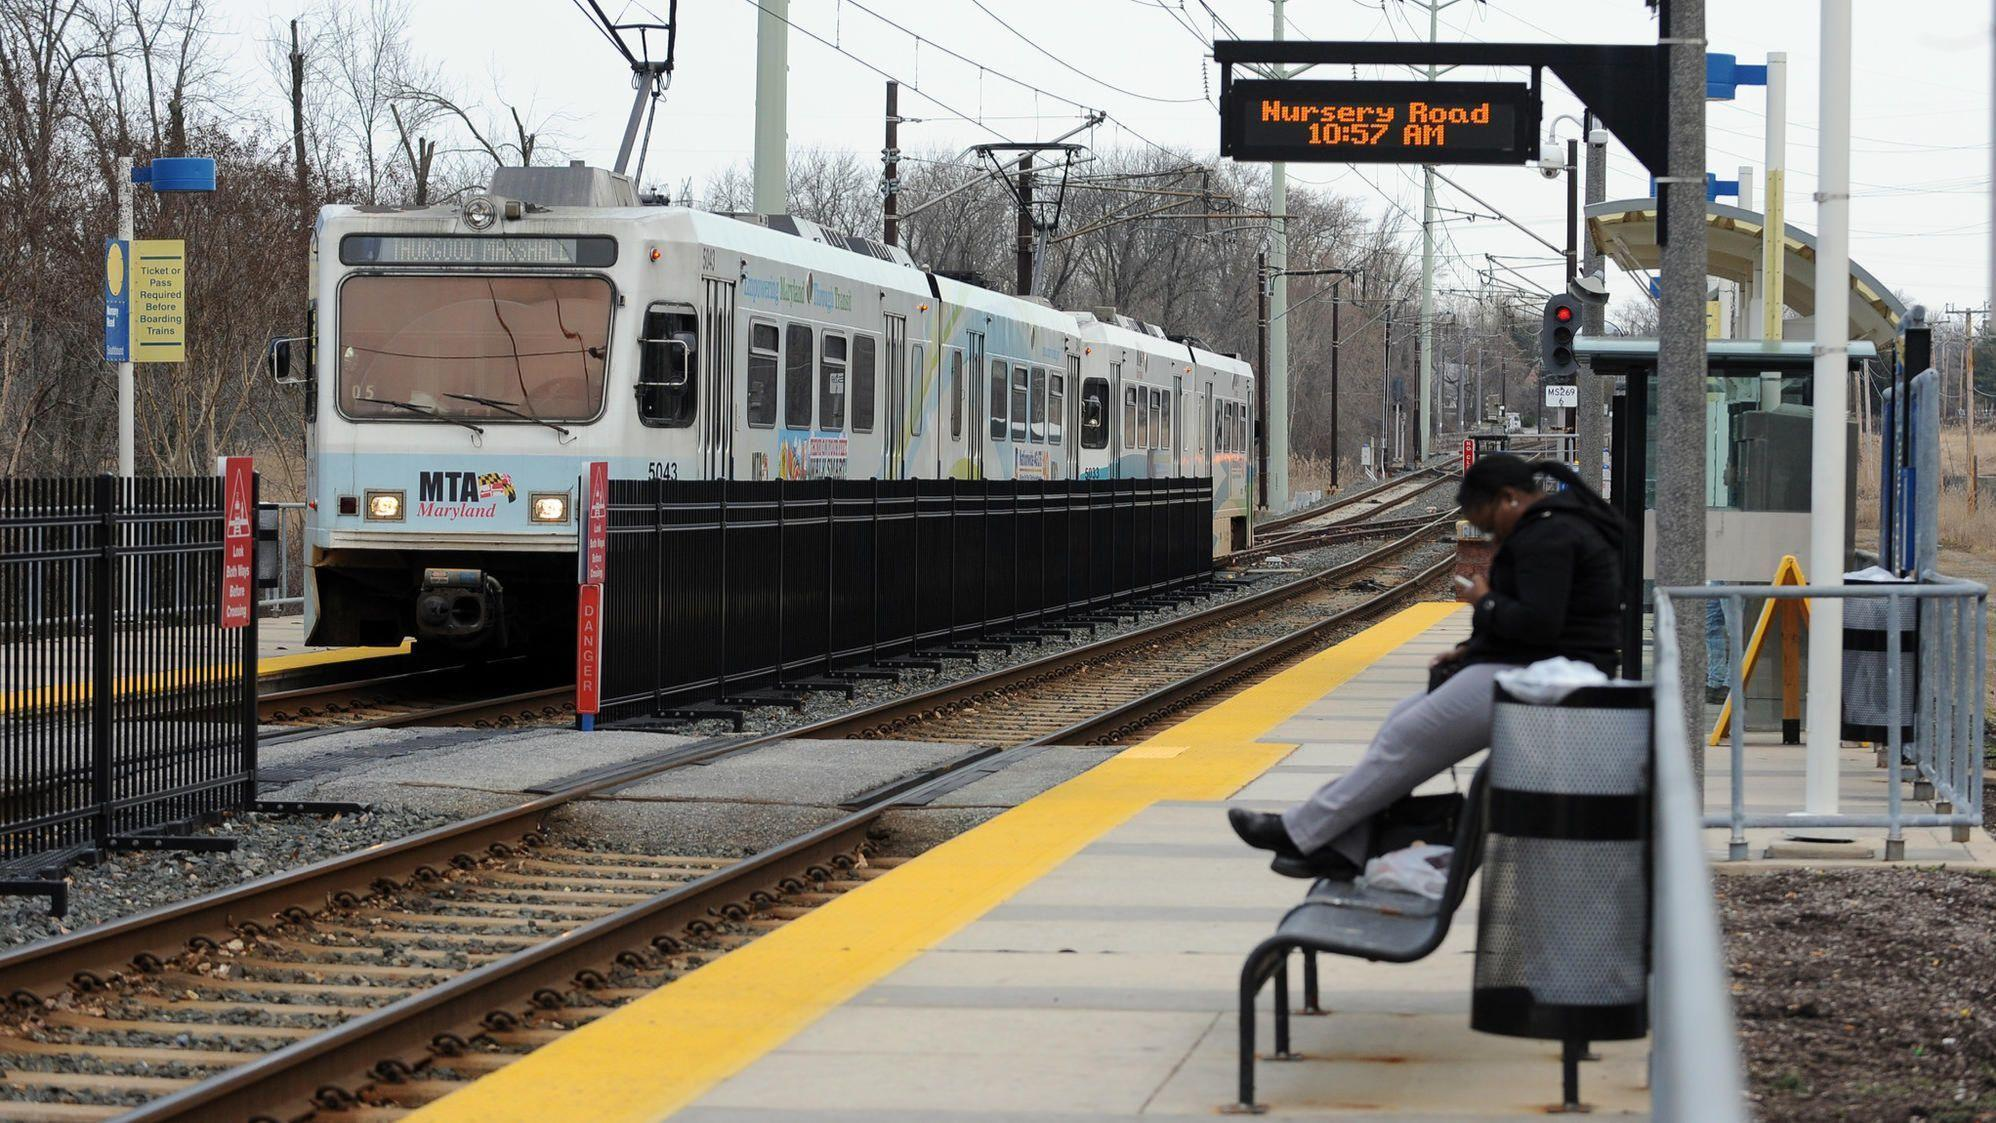 The Rise Of Urban Public Boarding >> Mta To Raise Transit Fares For Buses Subway Light Rail Mobility